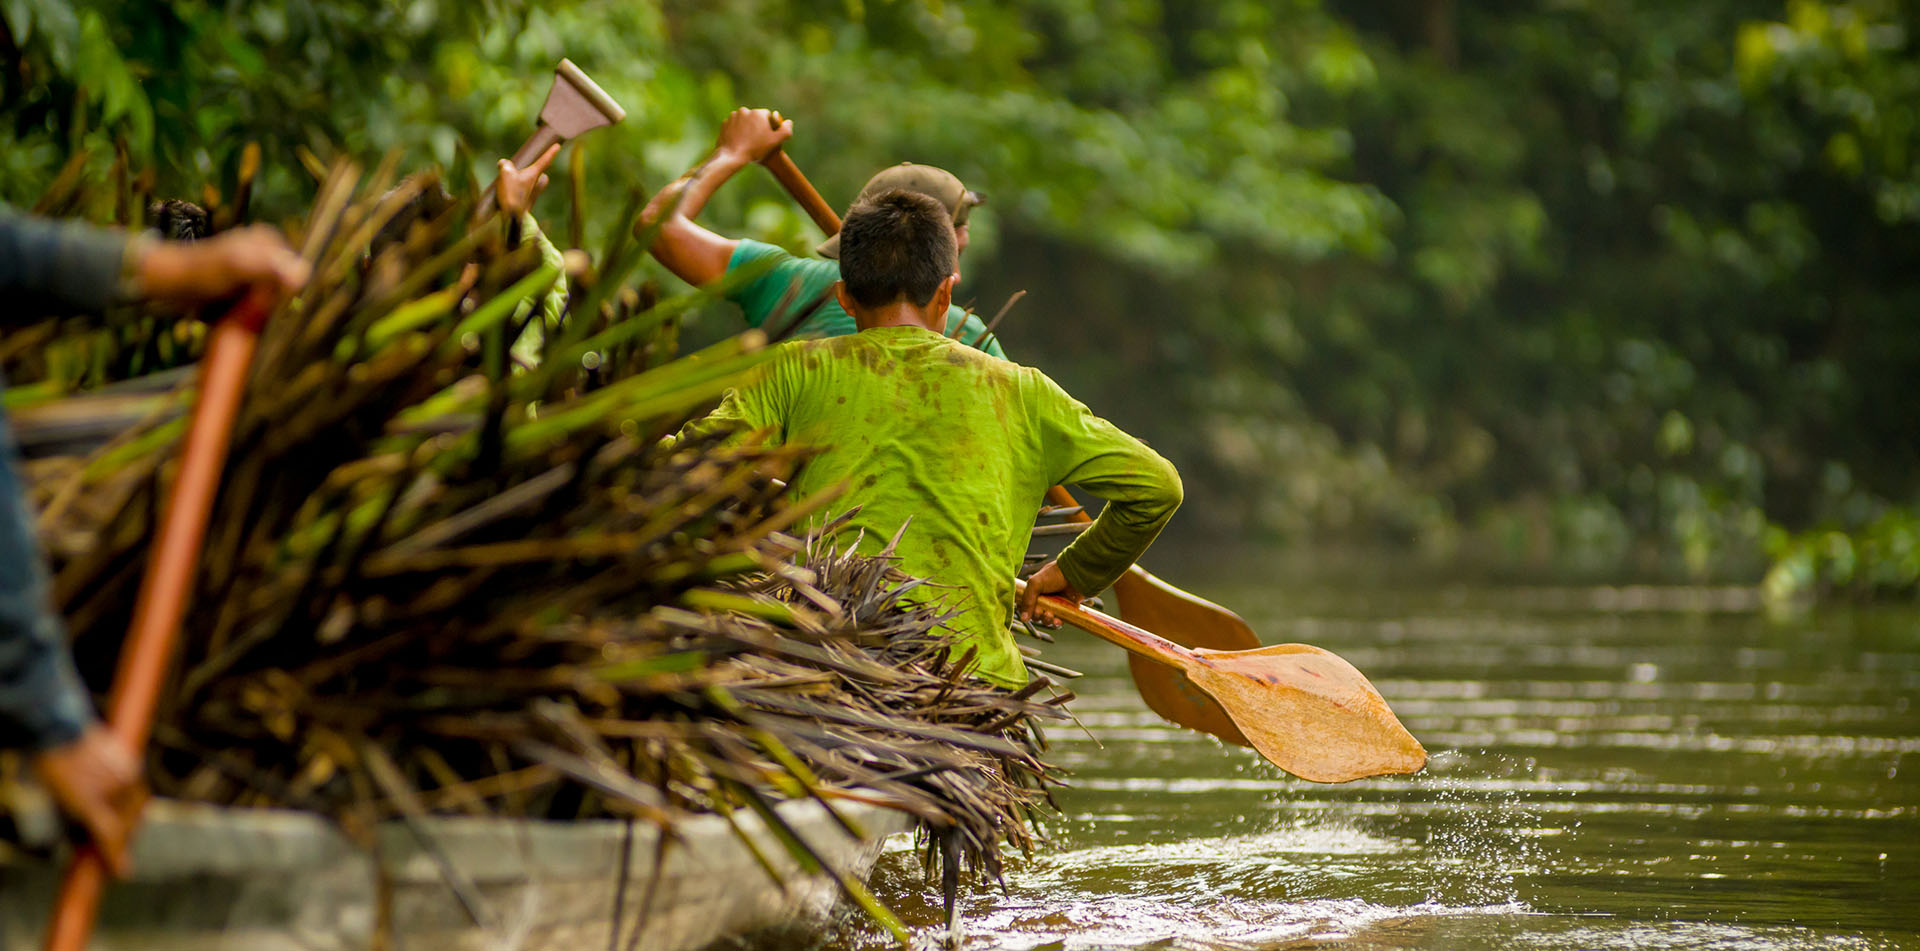 Ecuador South America Amazon river Quito rain forest Canoe in Yasuni National Park - luxury vacation destinations